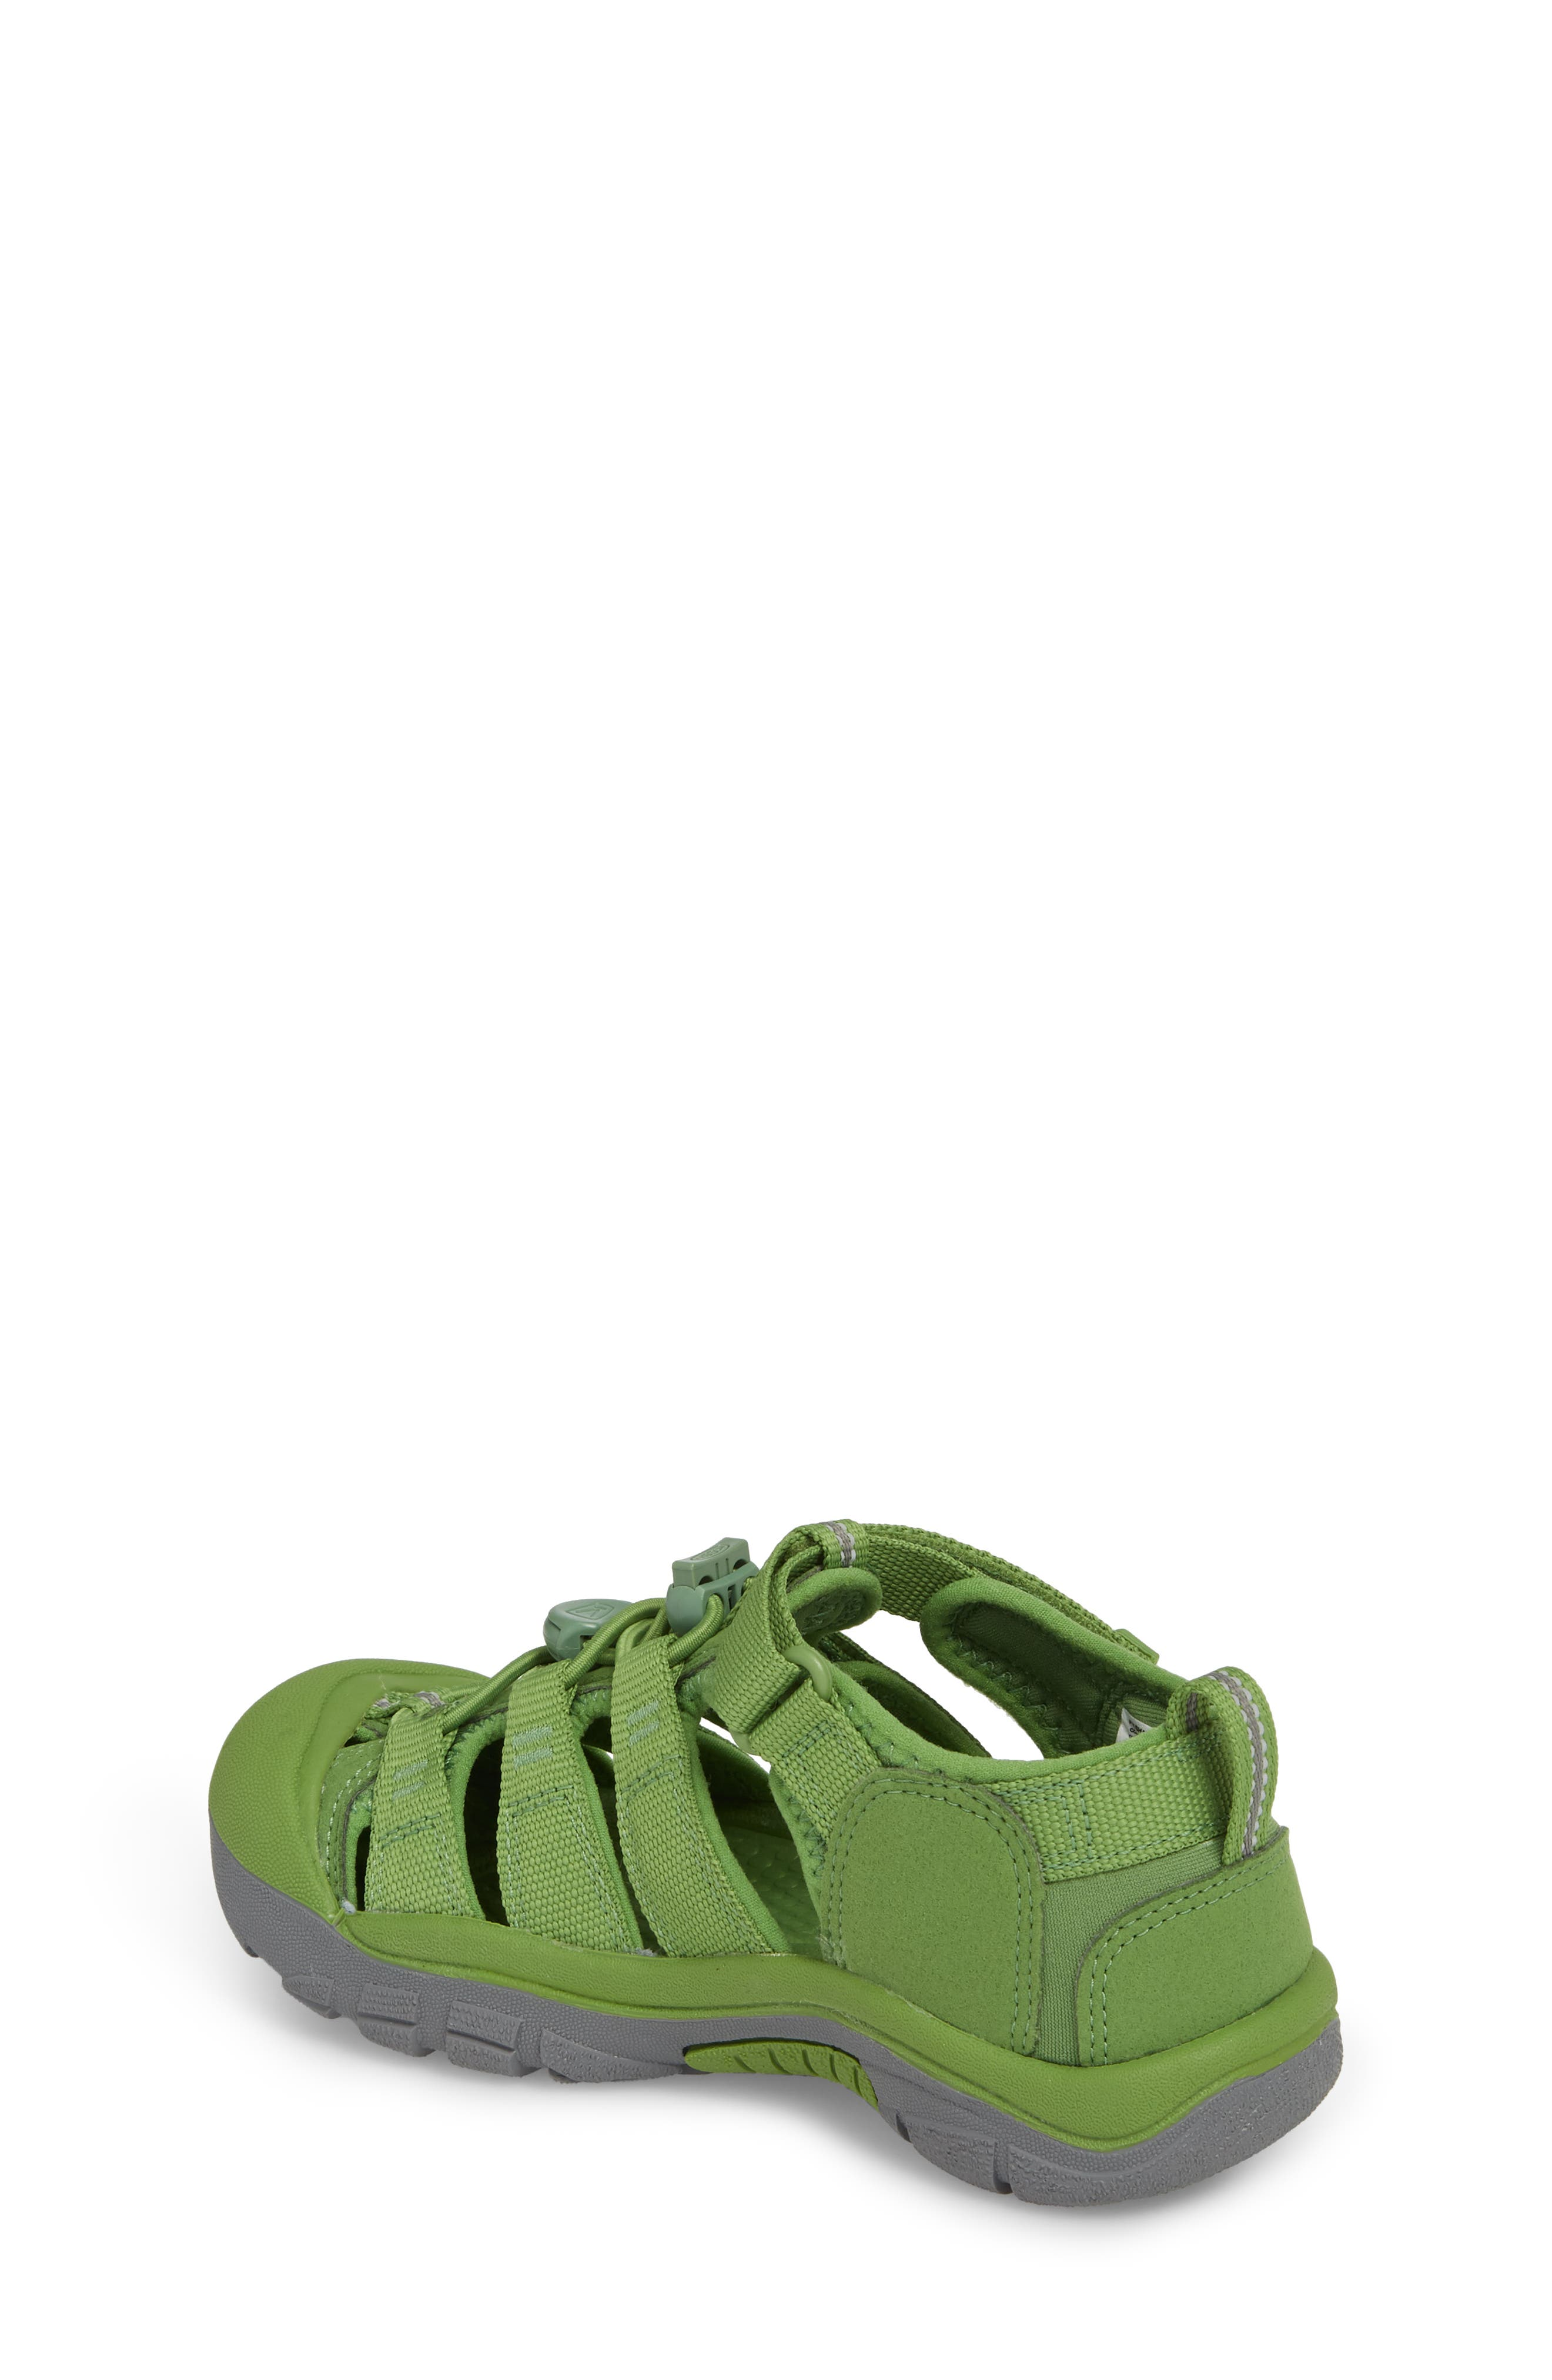 ,                             'Newport H2' Water Friendly Sandal,                             Alternate thumbnail 435, color,                             301